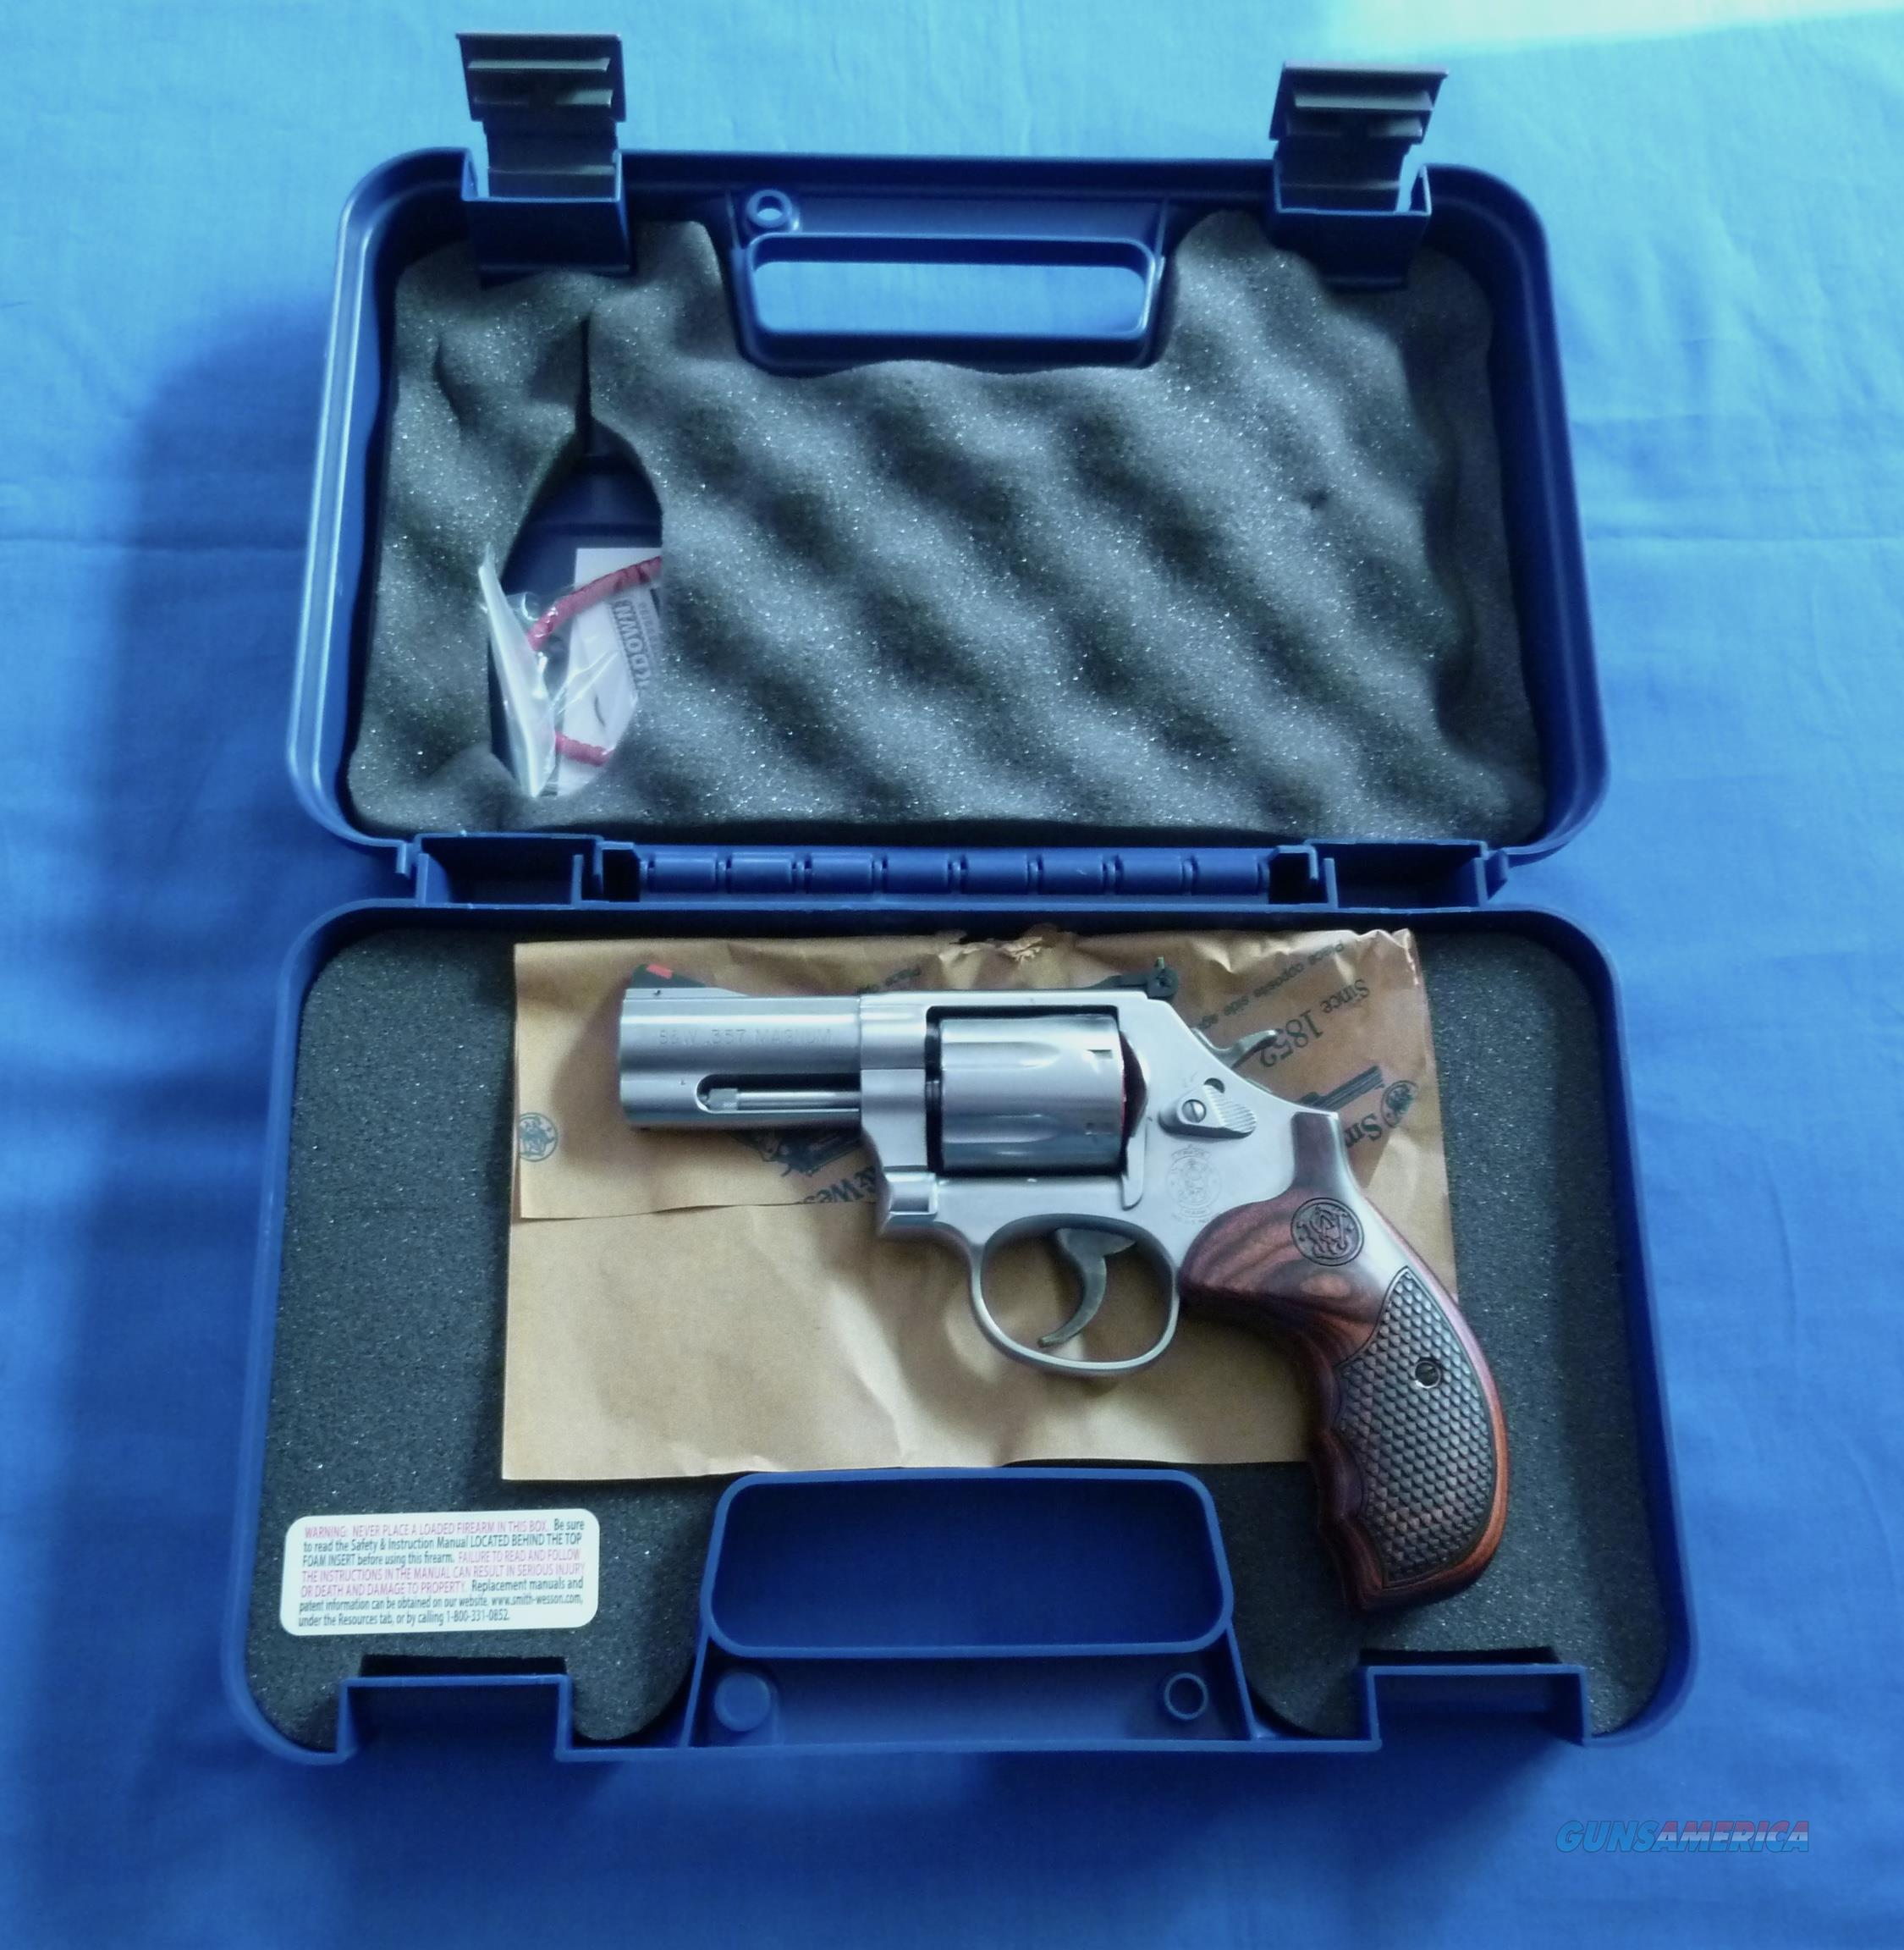 SMITH & WESSON 686 PLUS DELUXE 357 MAGNUM REVOLVER 7 RD. CAPACITY  Guns > Pistols > Smith & Wesson Revolvers > Med. Frame ( K/L )